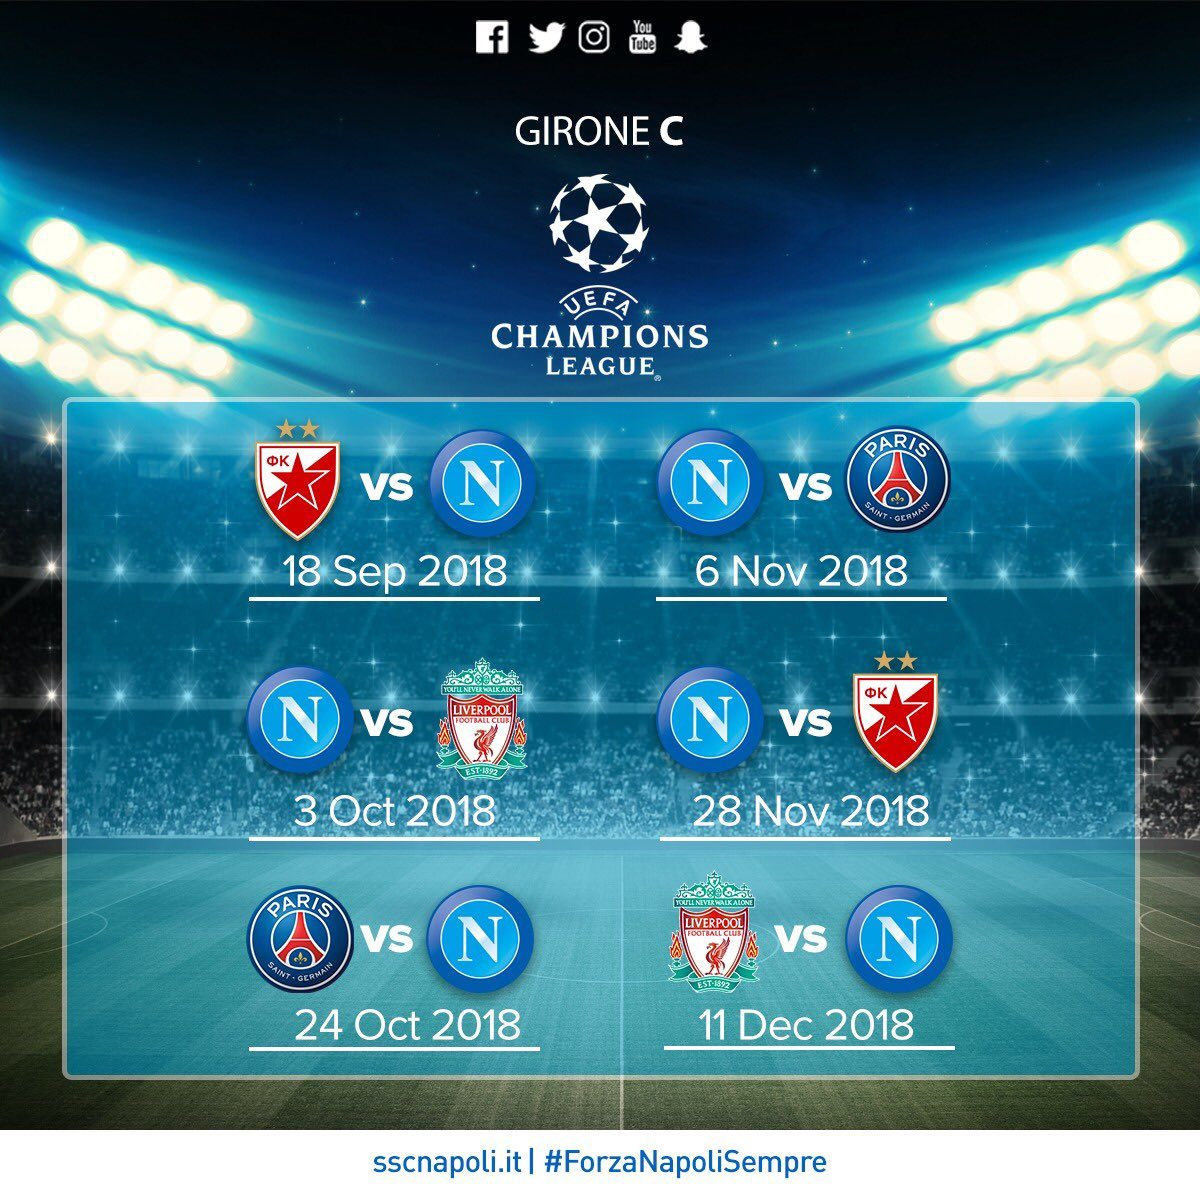 Calendario Partite Champions.Champions League Gruppo C Calendario Delle Partite Del